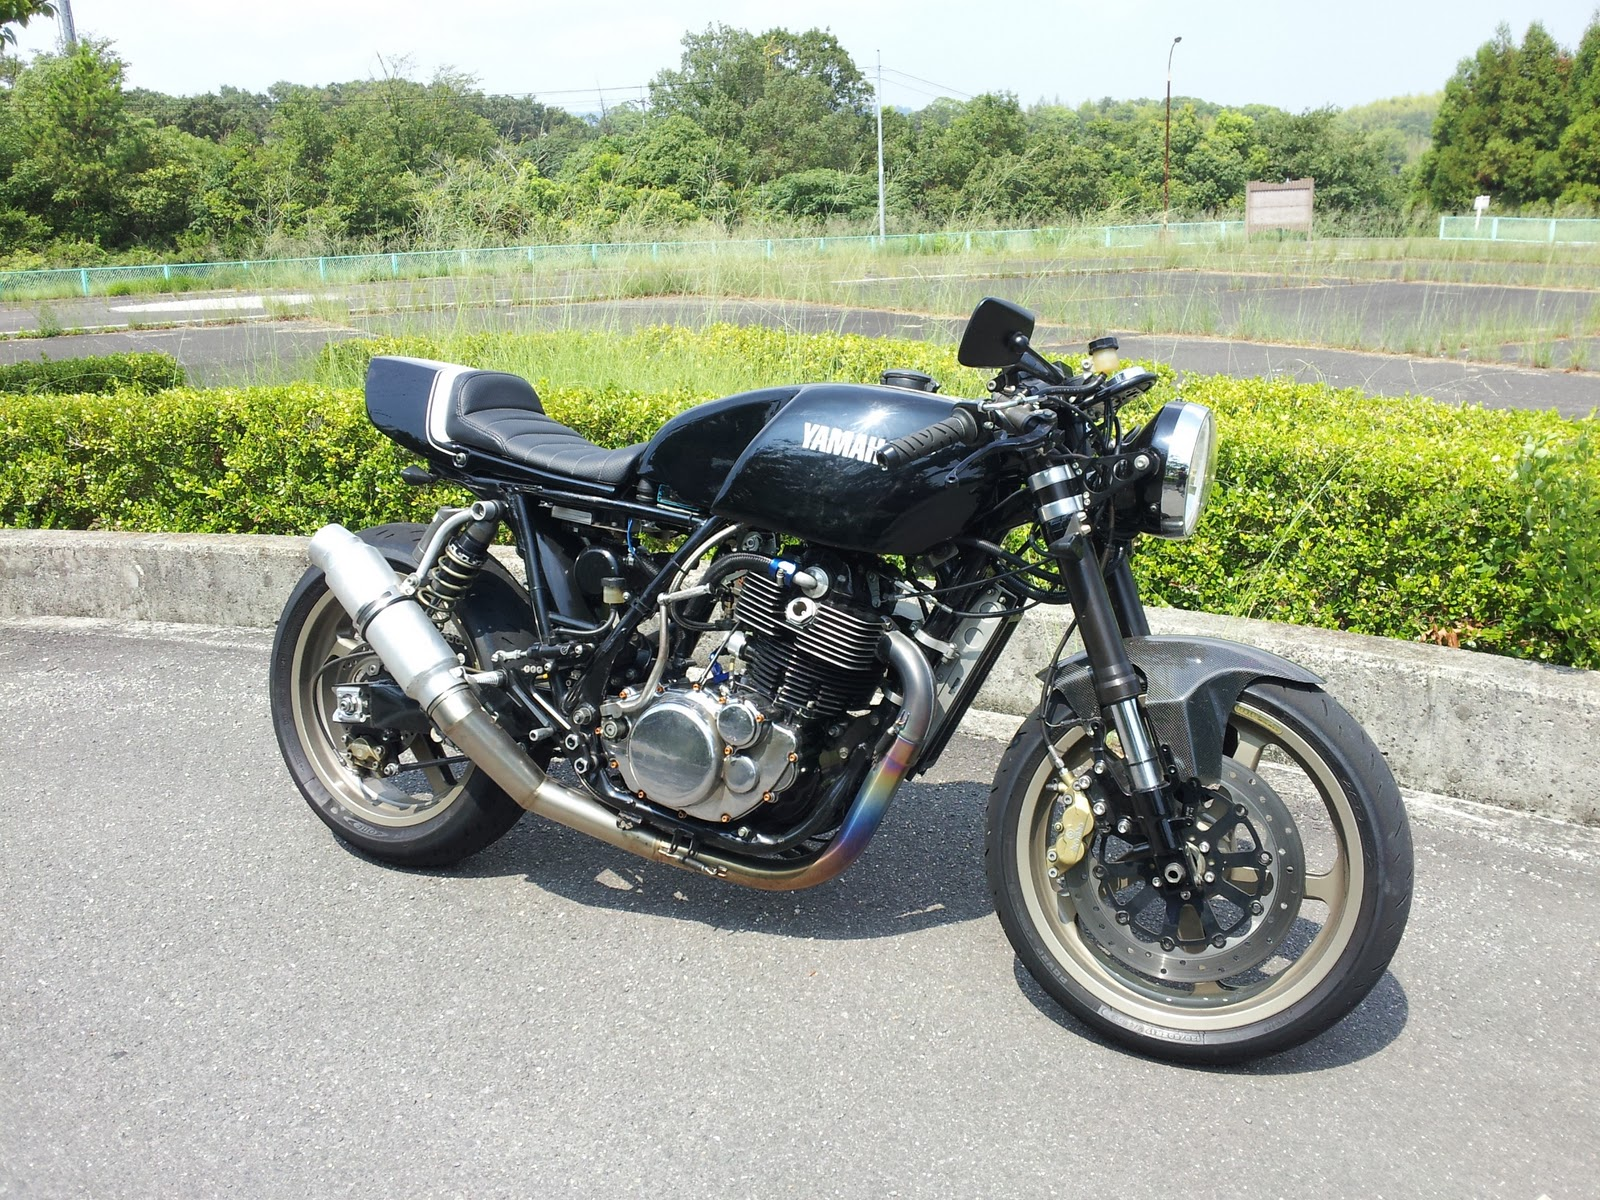 Racer, Oldies, naked ... - Page 39 Yamaha+SR+by+Loose+Motorcycle+01